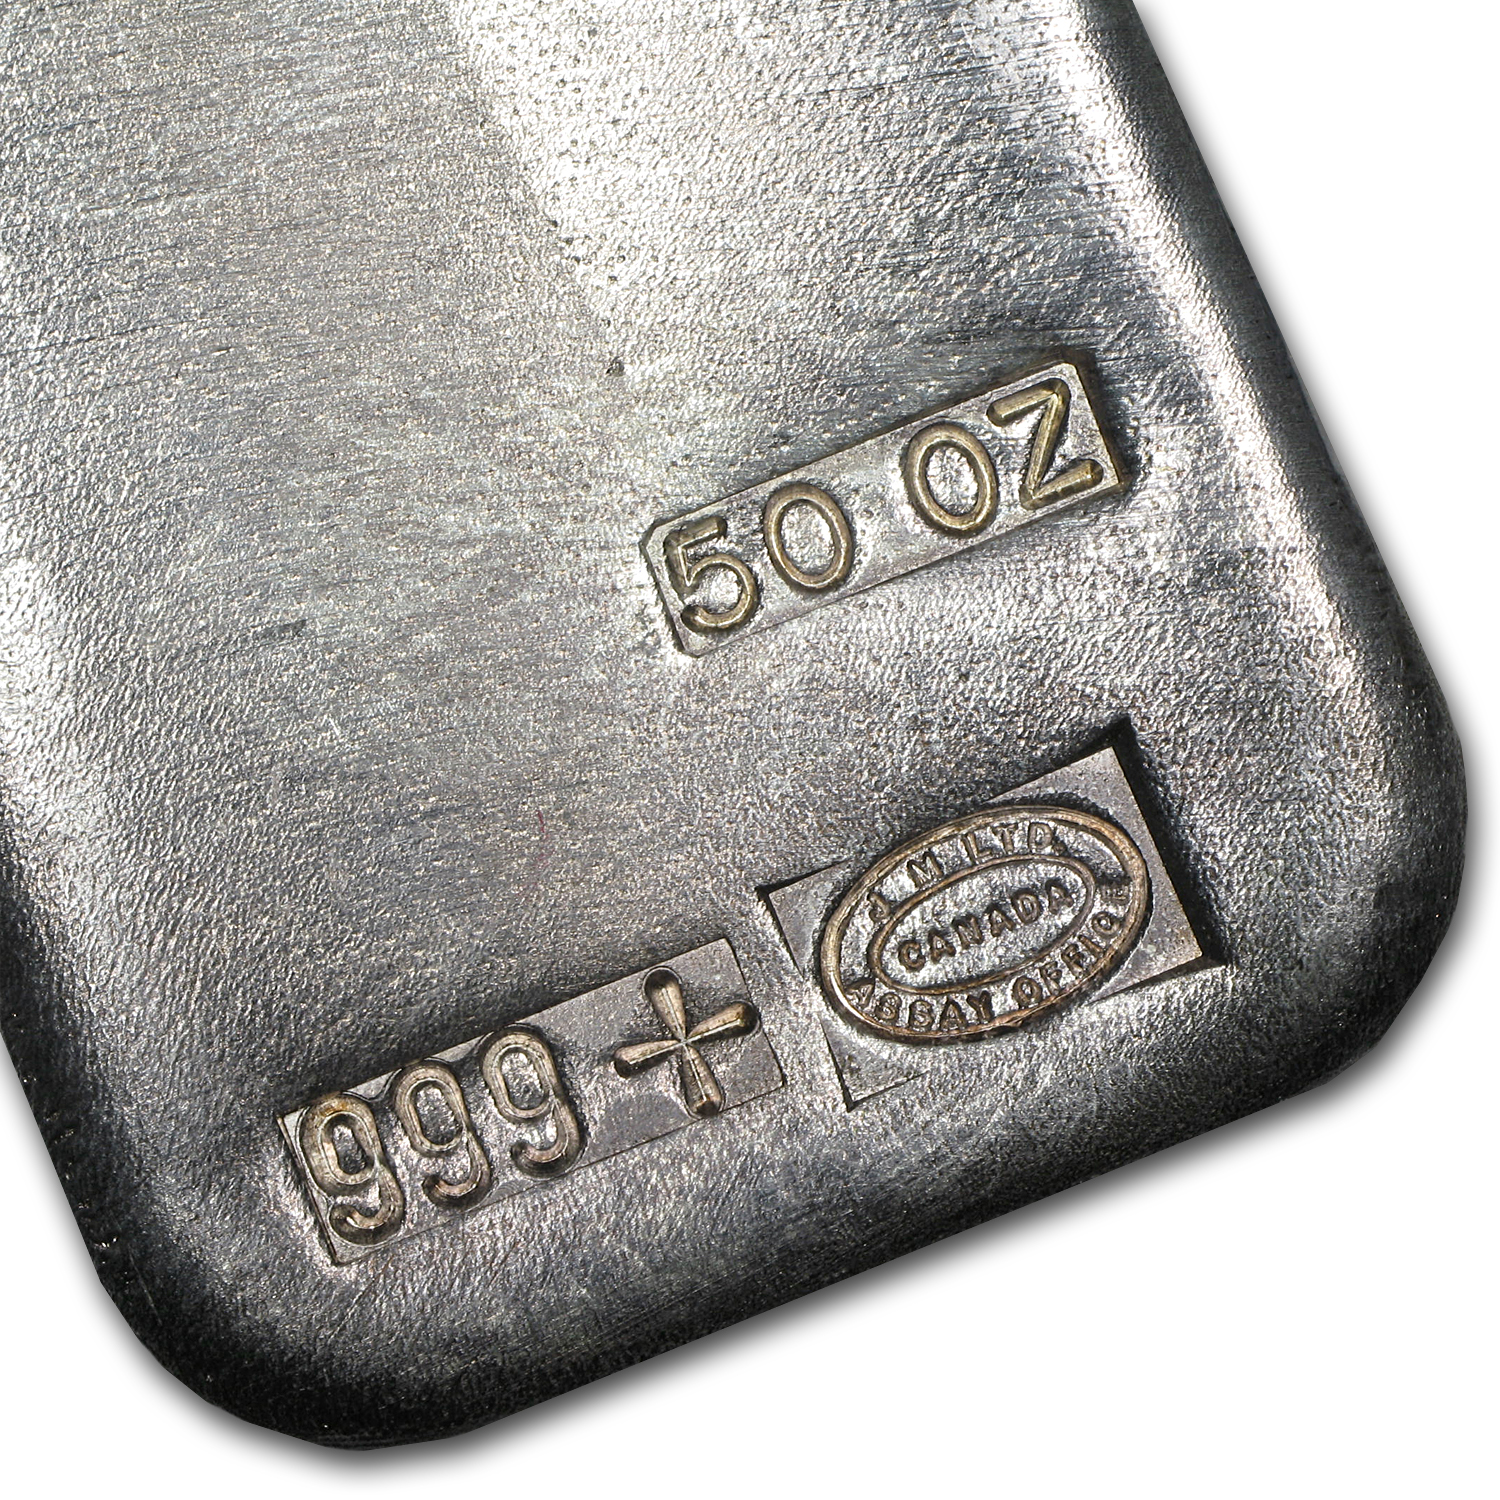 50 oz Silver Bar - Johnson Matthey (Serial #, Canada)